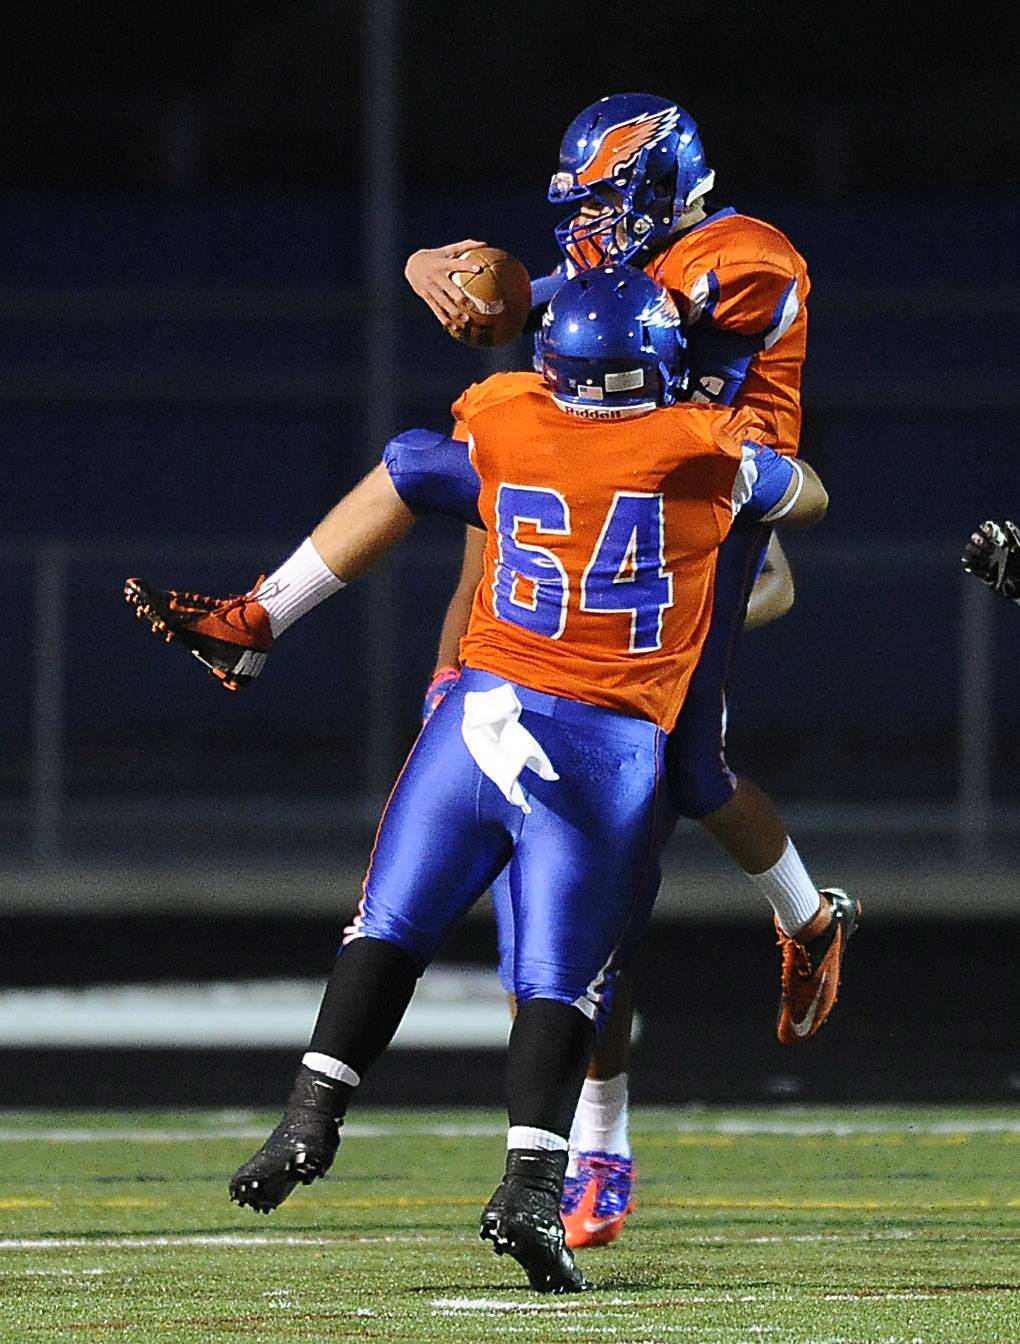 Quarterback Jeff Mayes, here celebrating a touchdown against Wheeling last year with teammate Baldemar Camacho, is one of nine returning starters on offense for the Hawks.